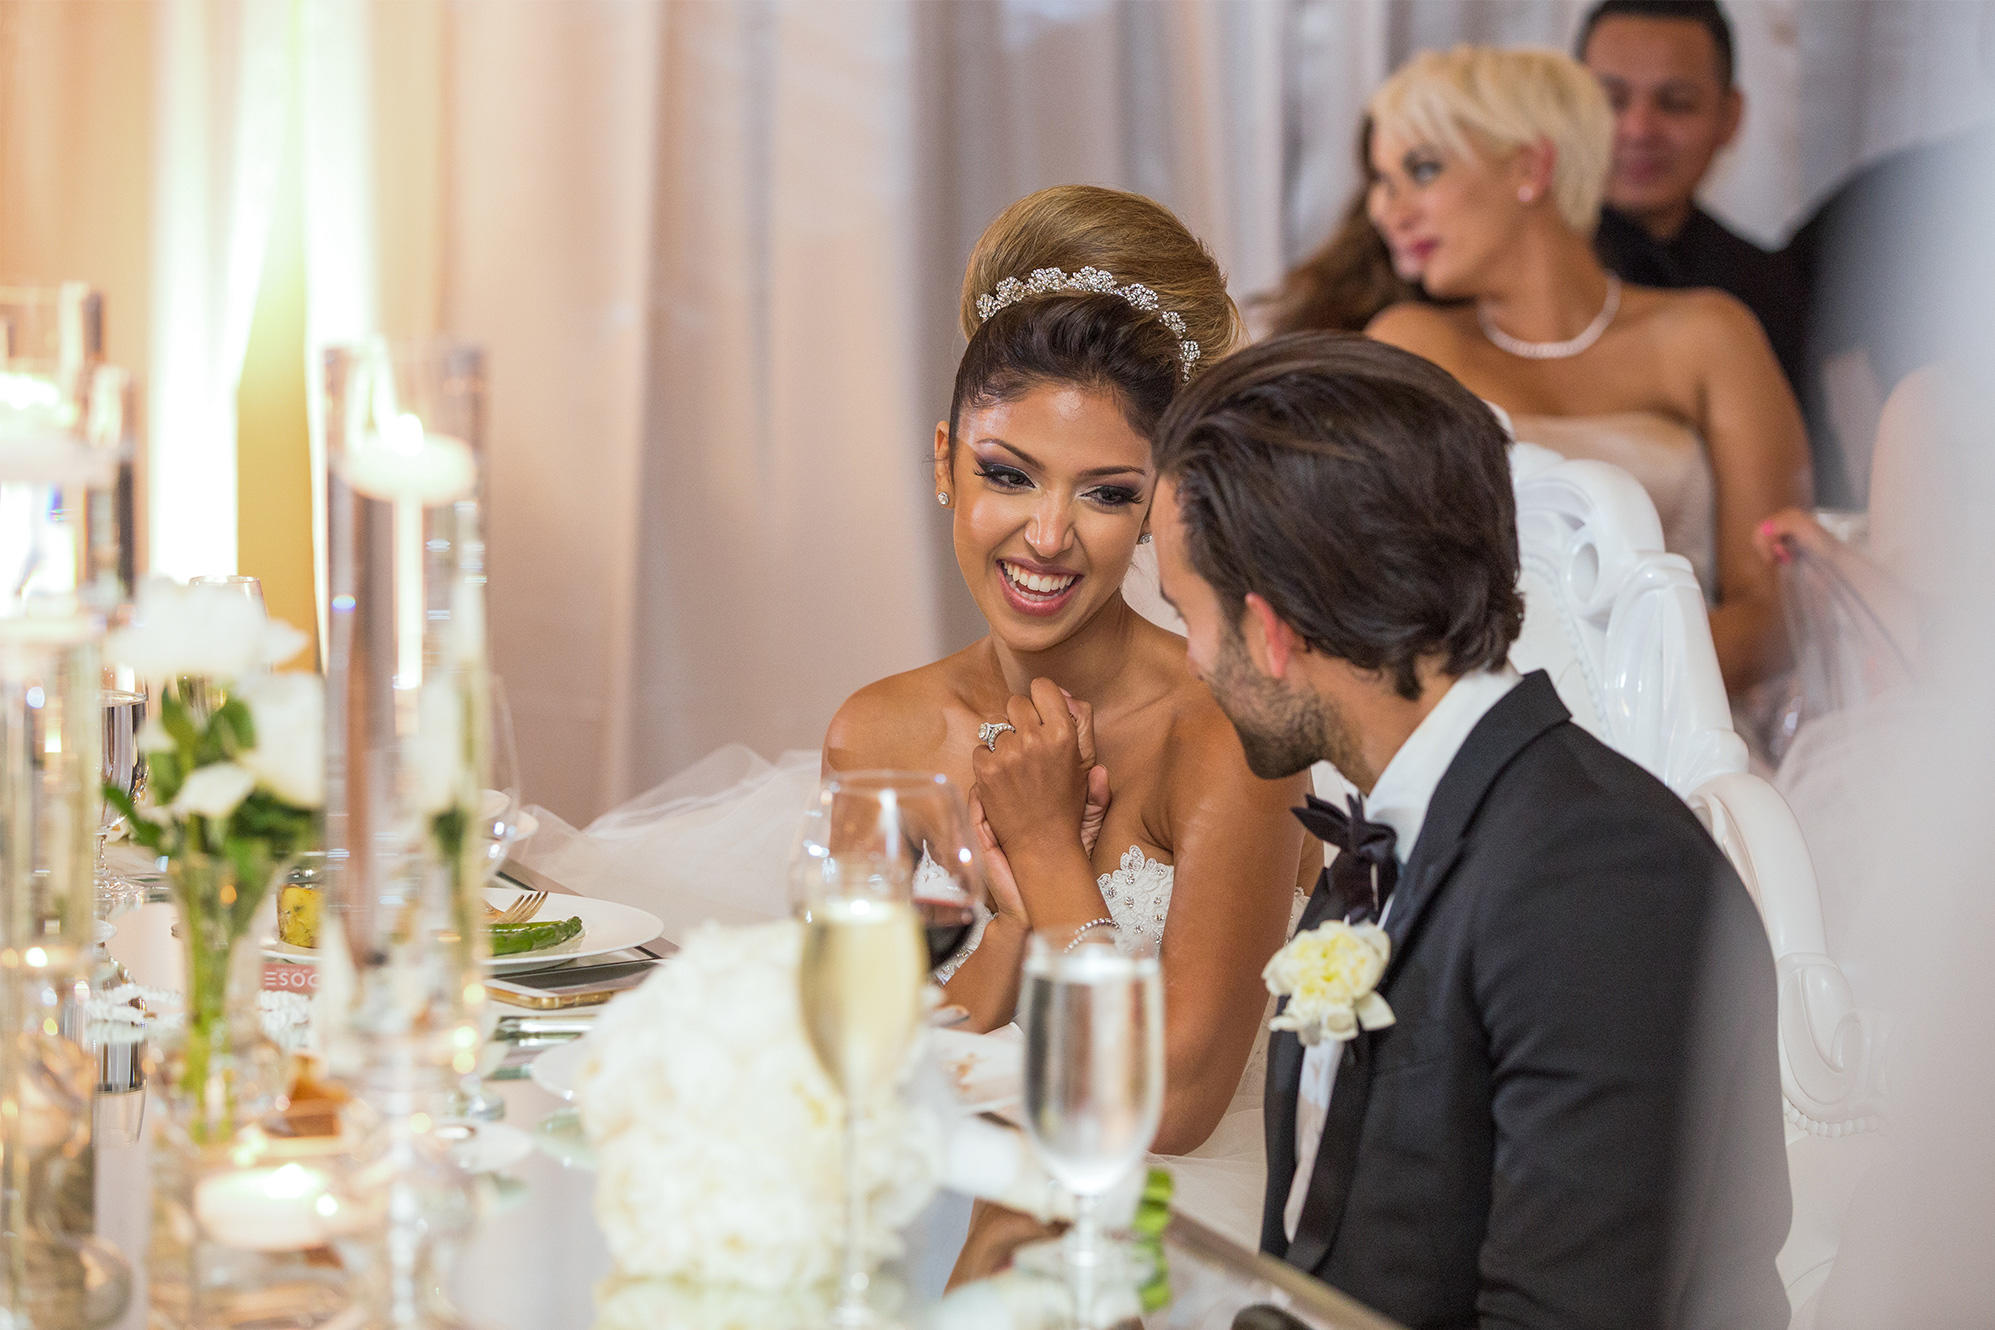 Persias big day say yes to the dress tlc 15 syttd the big day 303 ombrellifo Images